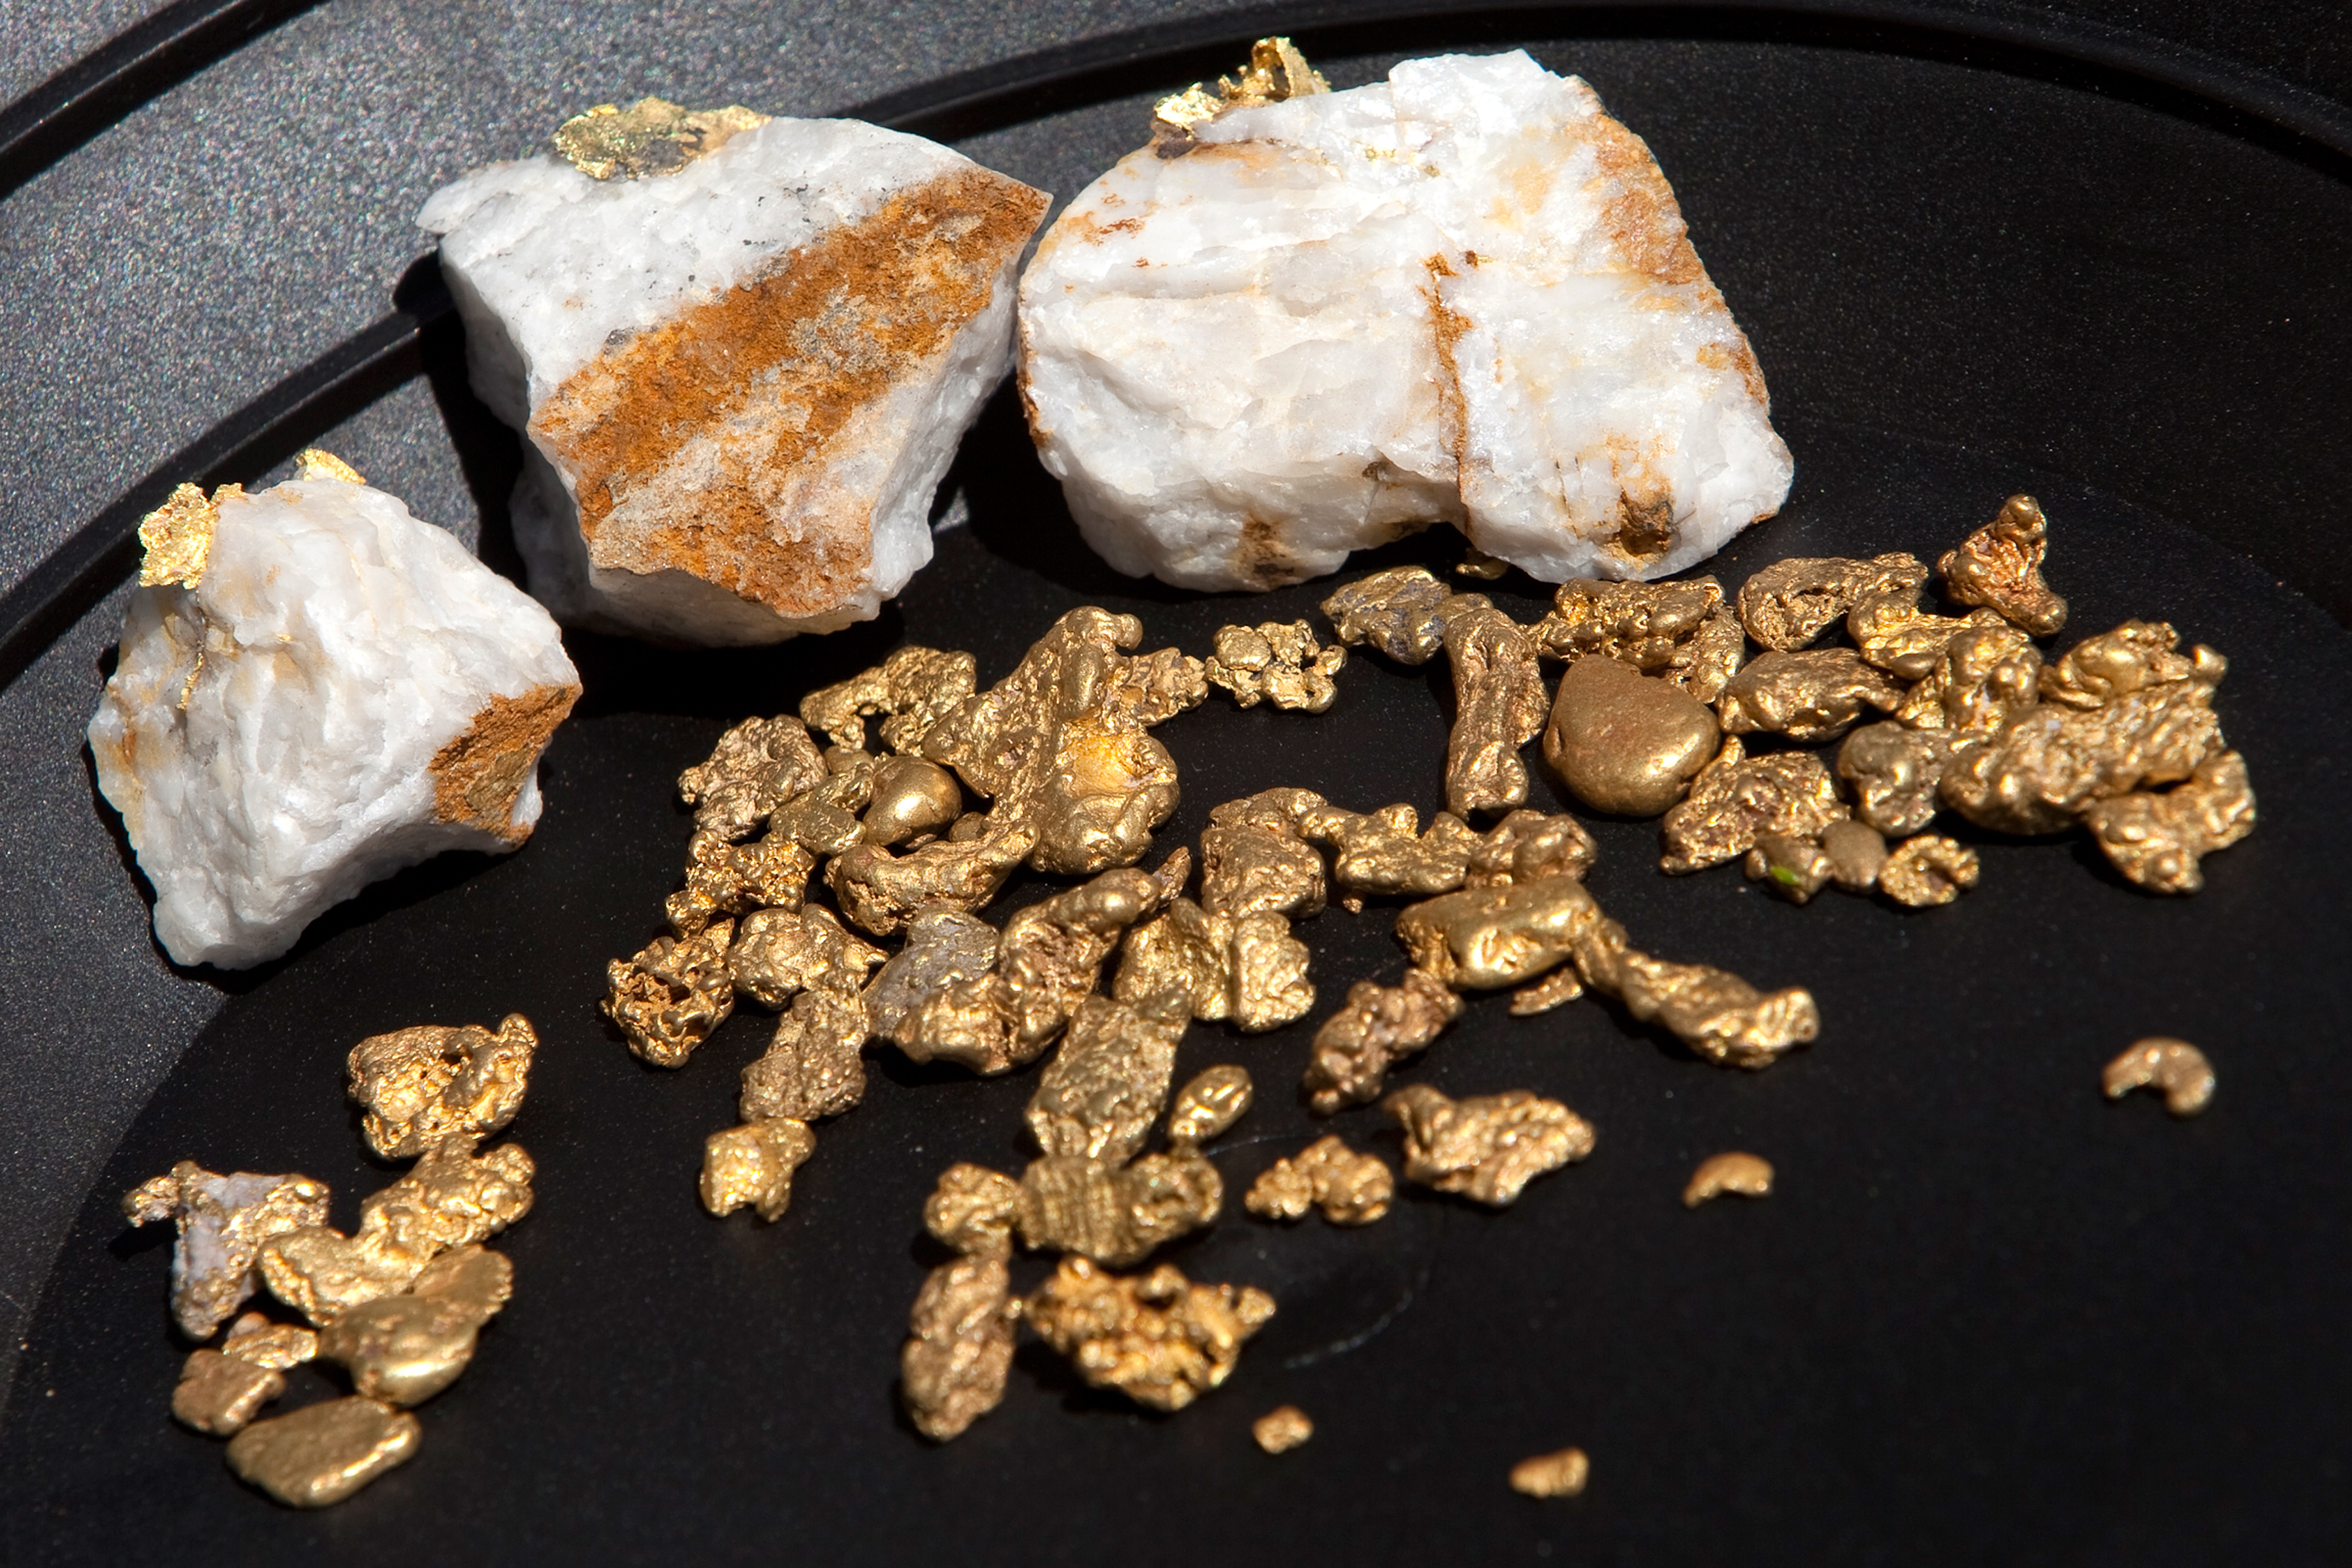 How To Identify Raw Gold